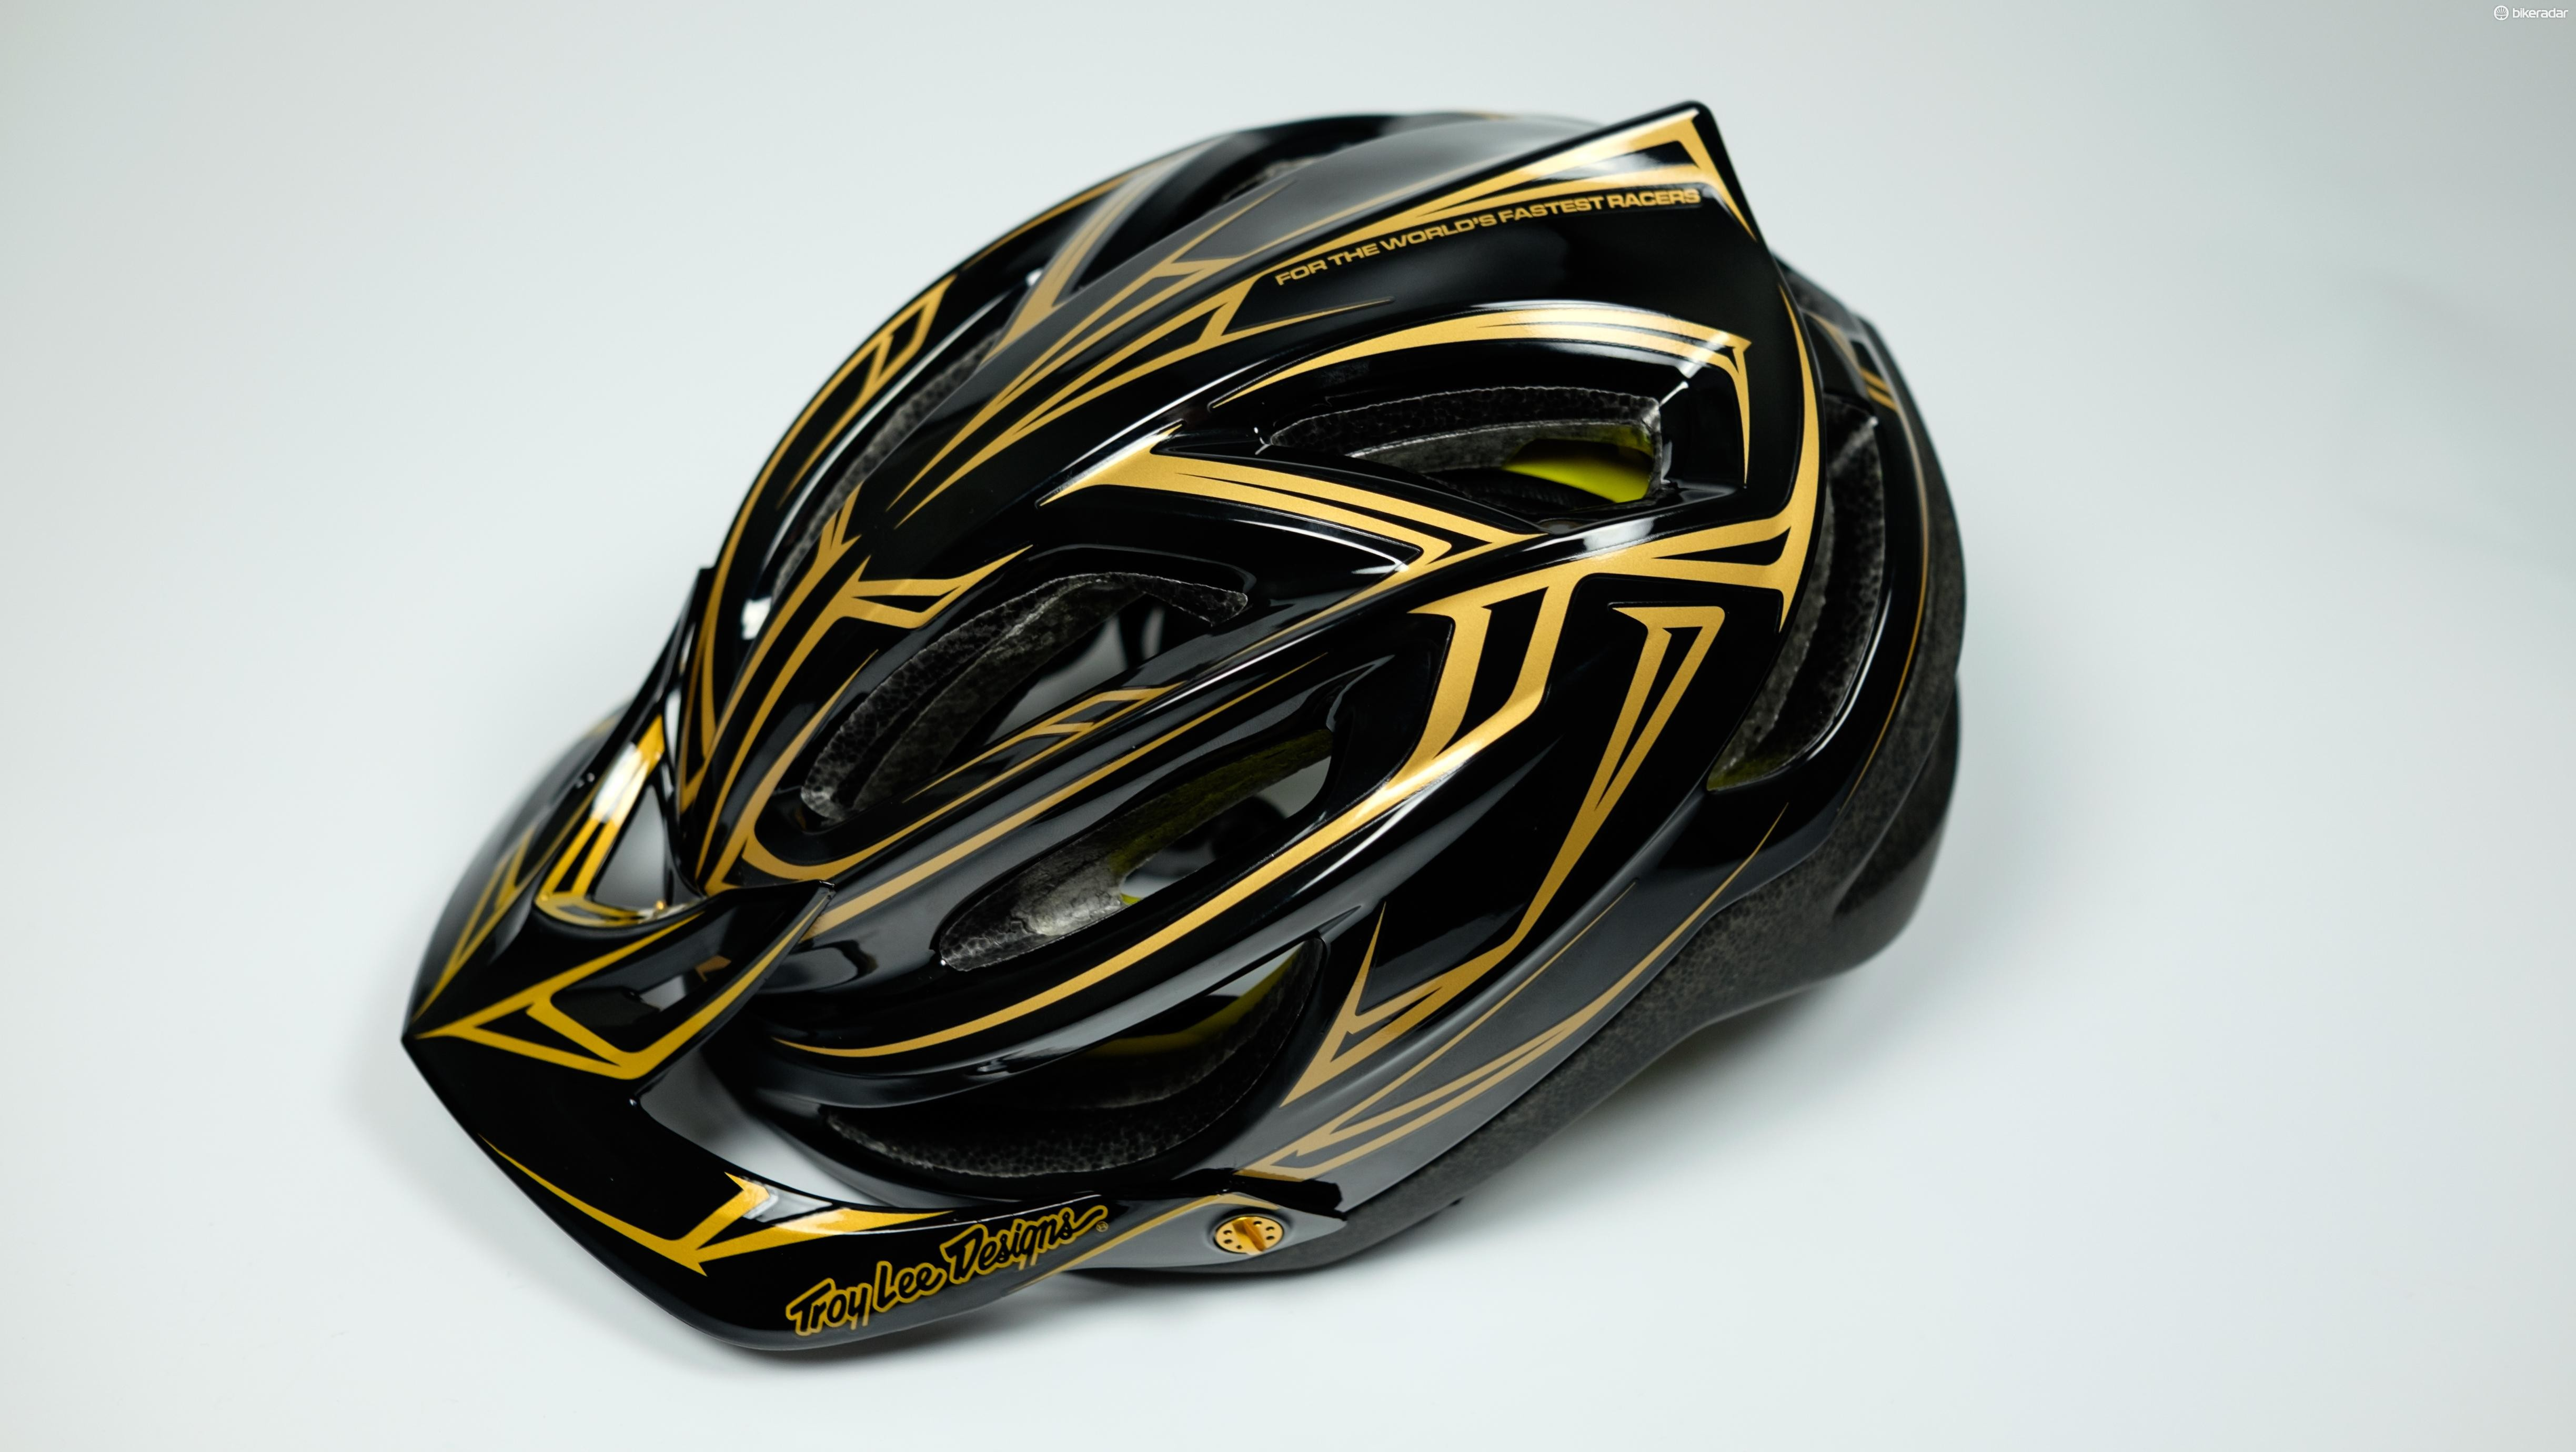 Troy Lee's A2 helmet looks particularly nice in this black/gold pinstripe colour scheme